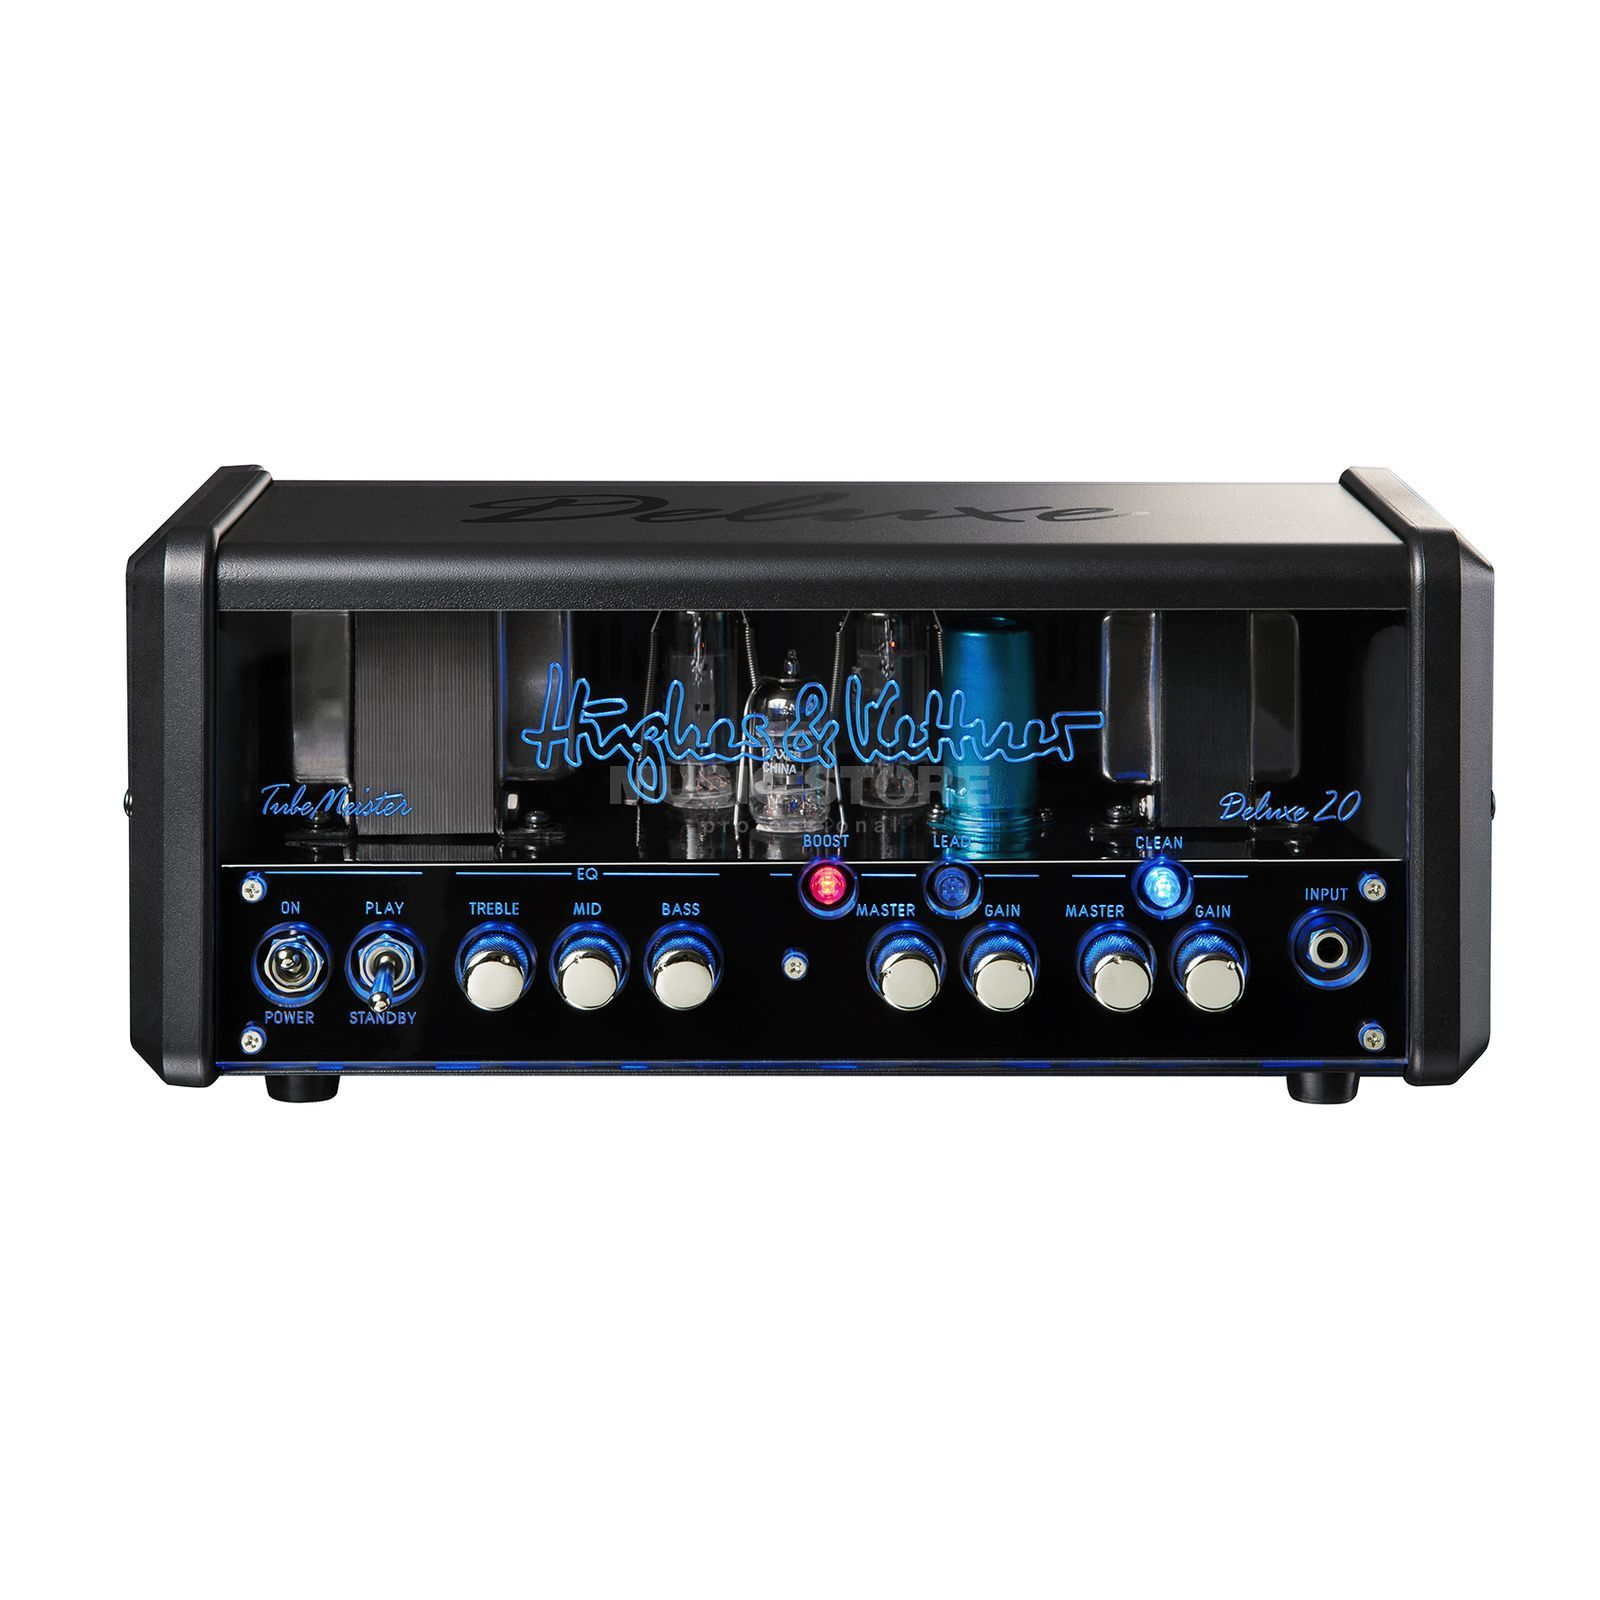 Hughes & Kettner TubeMeister Deluxe 20 Product Image